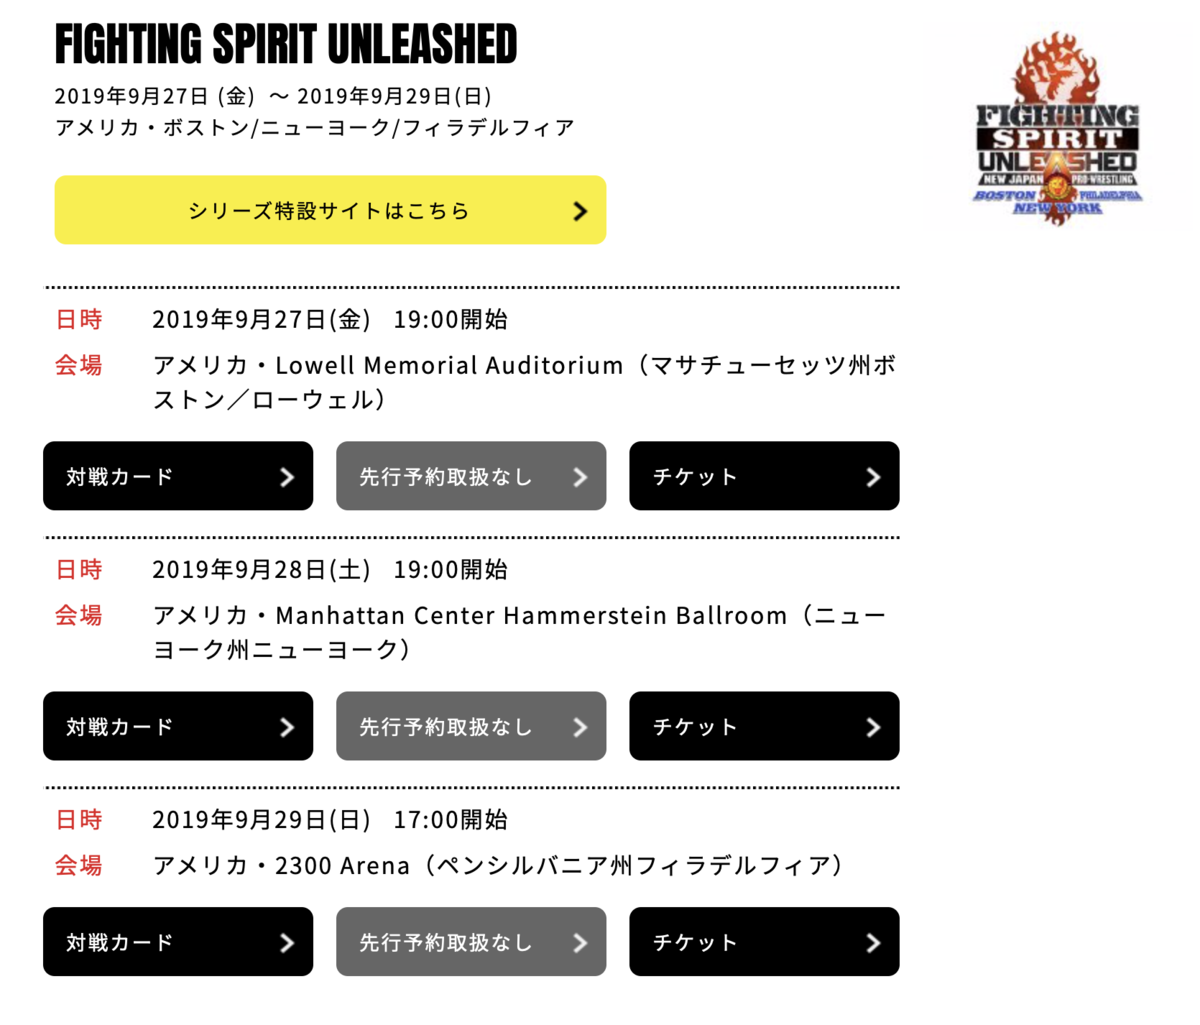 FIGHTING SPIRIT UNLEASHEDスケジュール